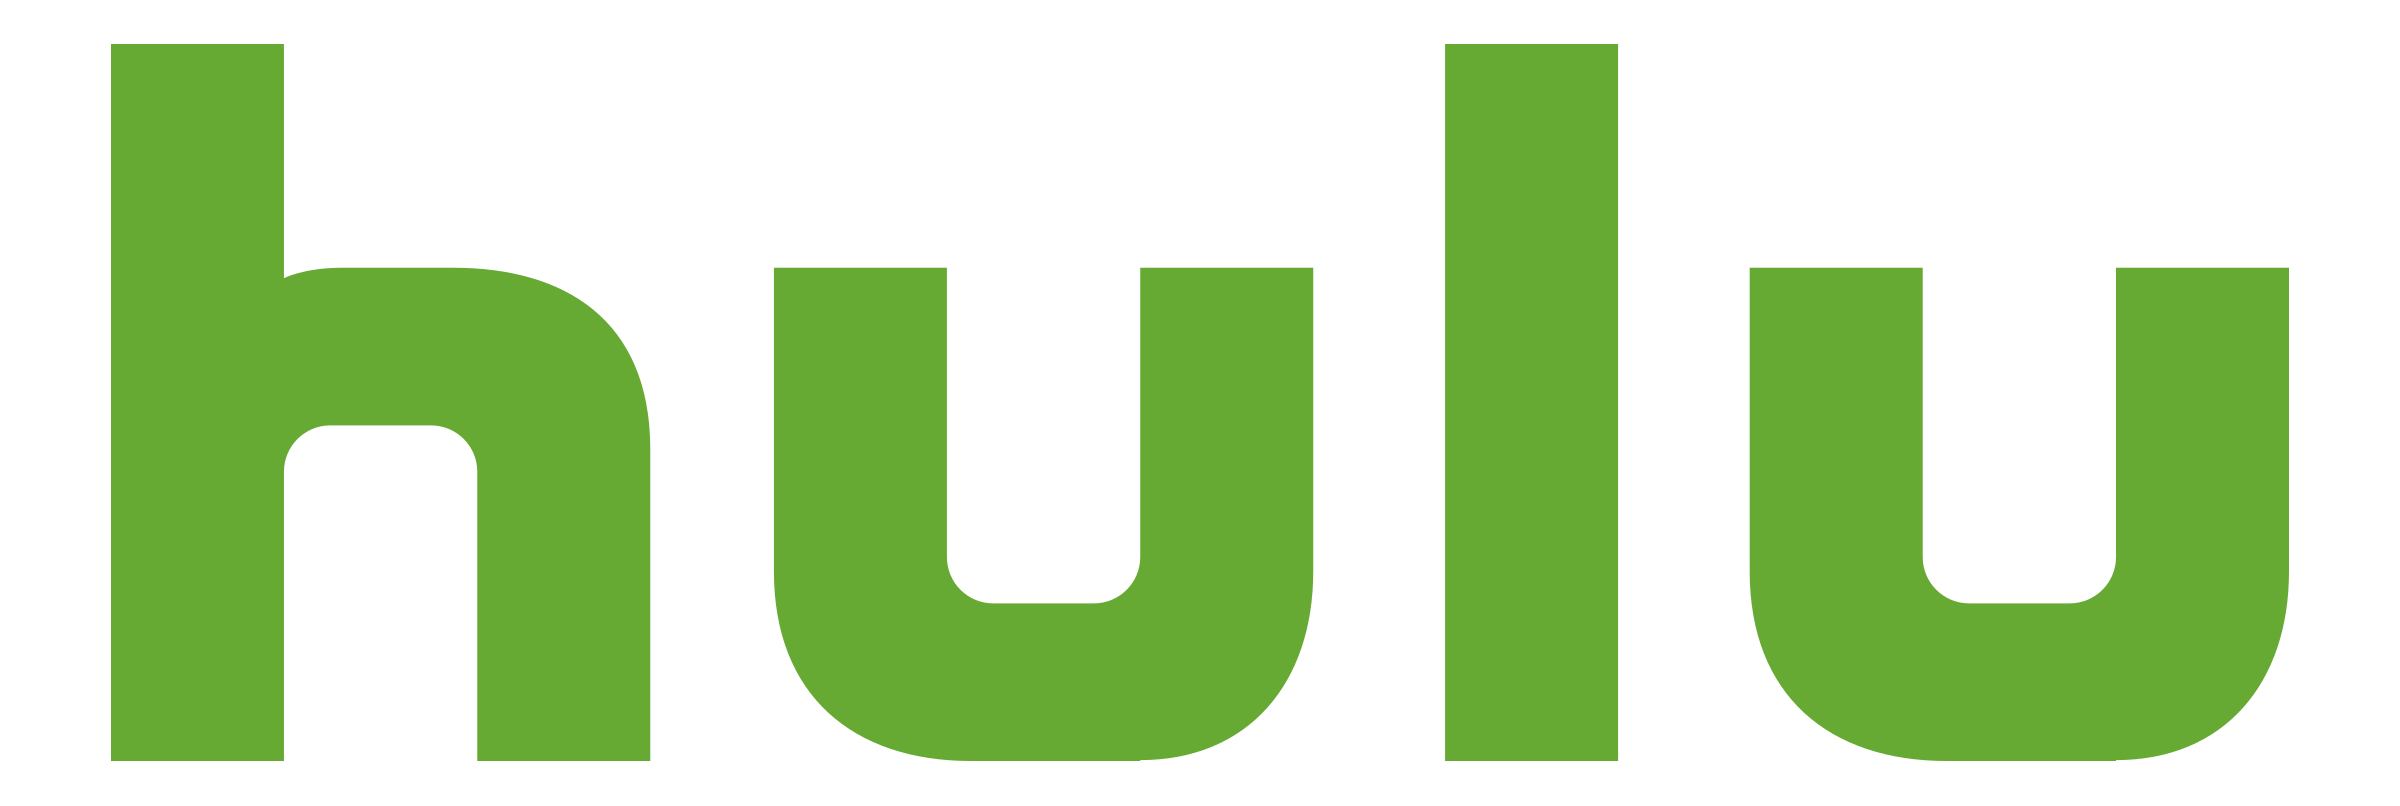 Hulu Logo PNG Transparent & SVG Vector